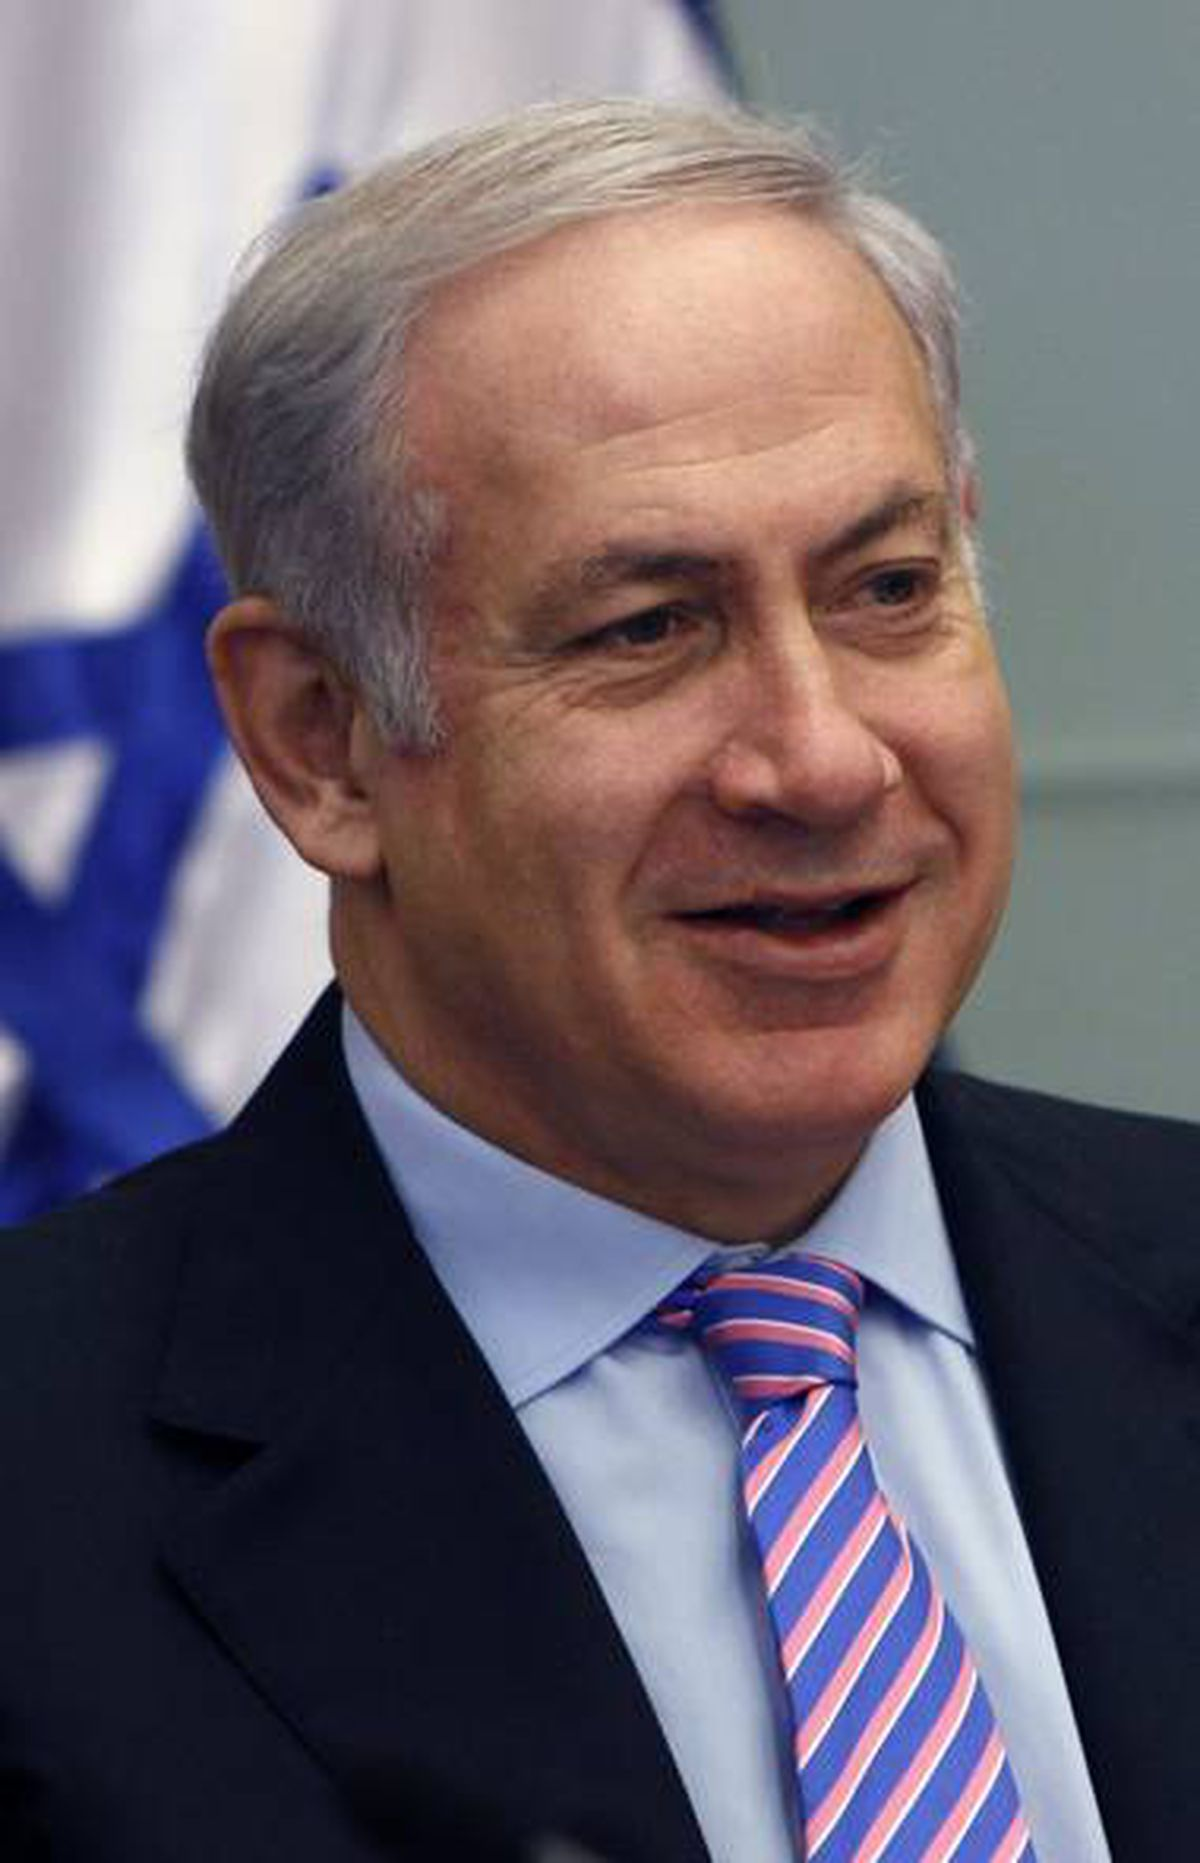 """ISRAEL: A confidential diplomatic cable says Prime Minister Benjamin Netanyahu supports the notion of land swaps with the Palestinians. The Feb. 26, 2009, cable, dated two weeks after the Israeli leader was elected, says """"Netanyahu expressed support for the concept of land swaps, and emphasized that he did not want to govern the West Bank and Gaza but rather to stop attacks from being launched from there."""" However, an Israeli official, speaking on condition of anonymity, said that Mr. Netanyahu did not discuss land swaps."""